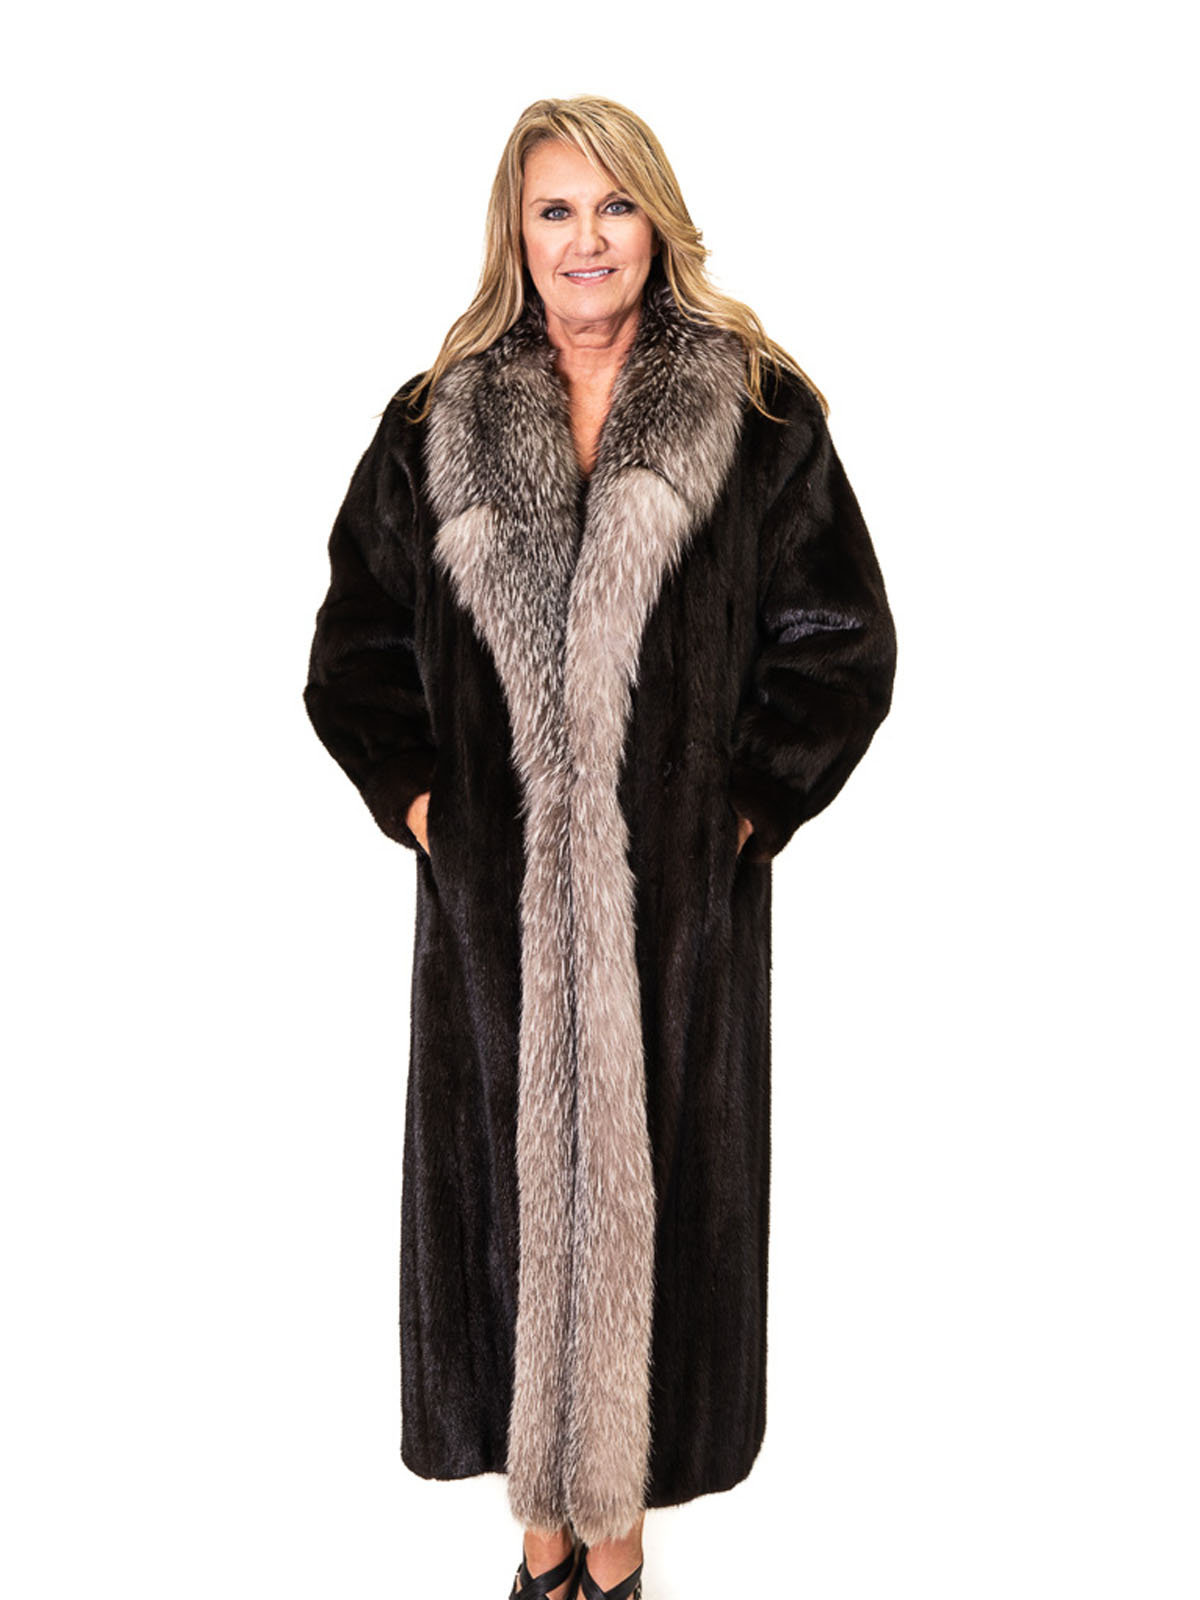 Natural Ranch Letout Mink Coat with Indigo Silver Fox Tuxedo Trim